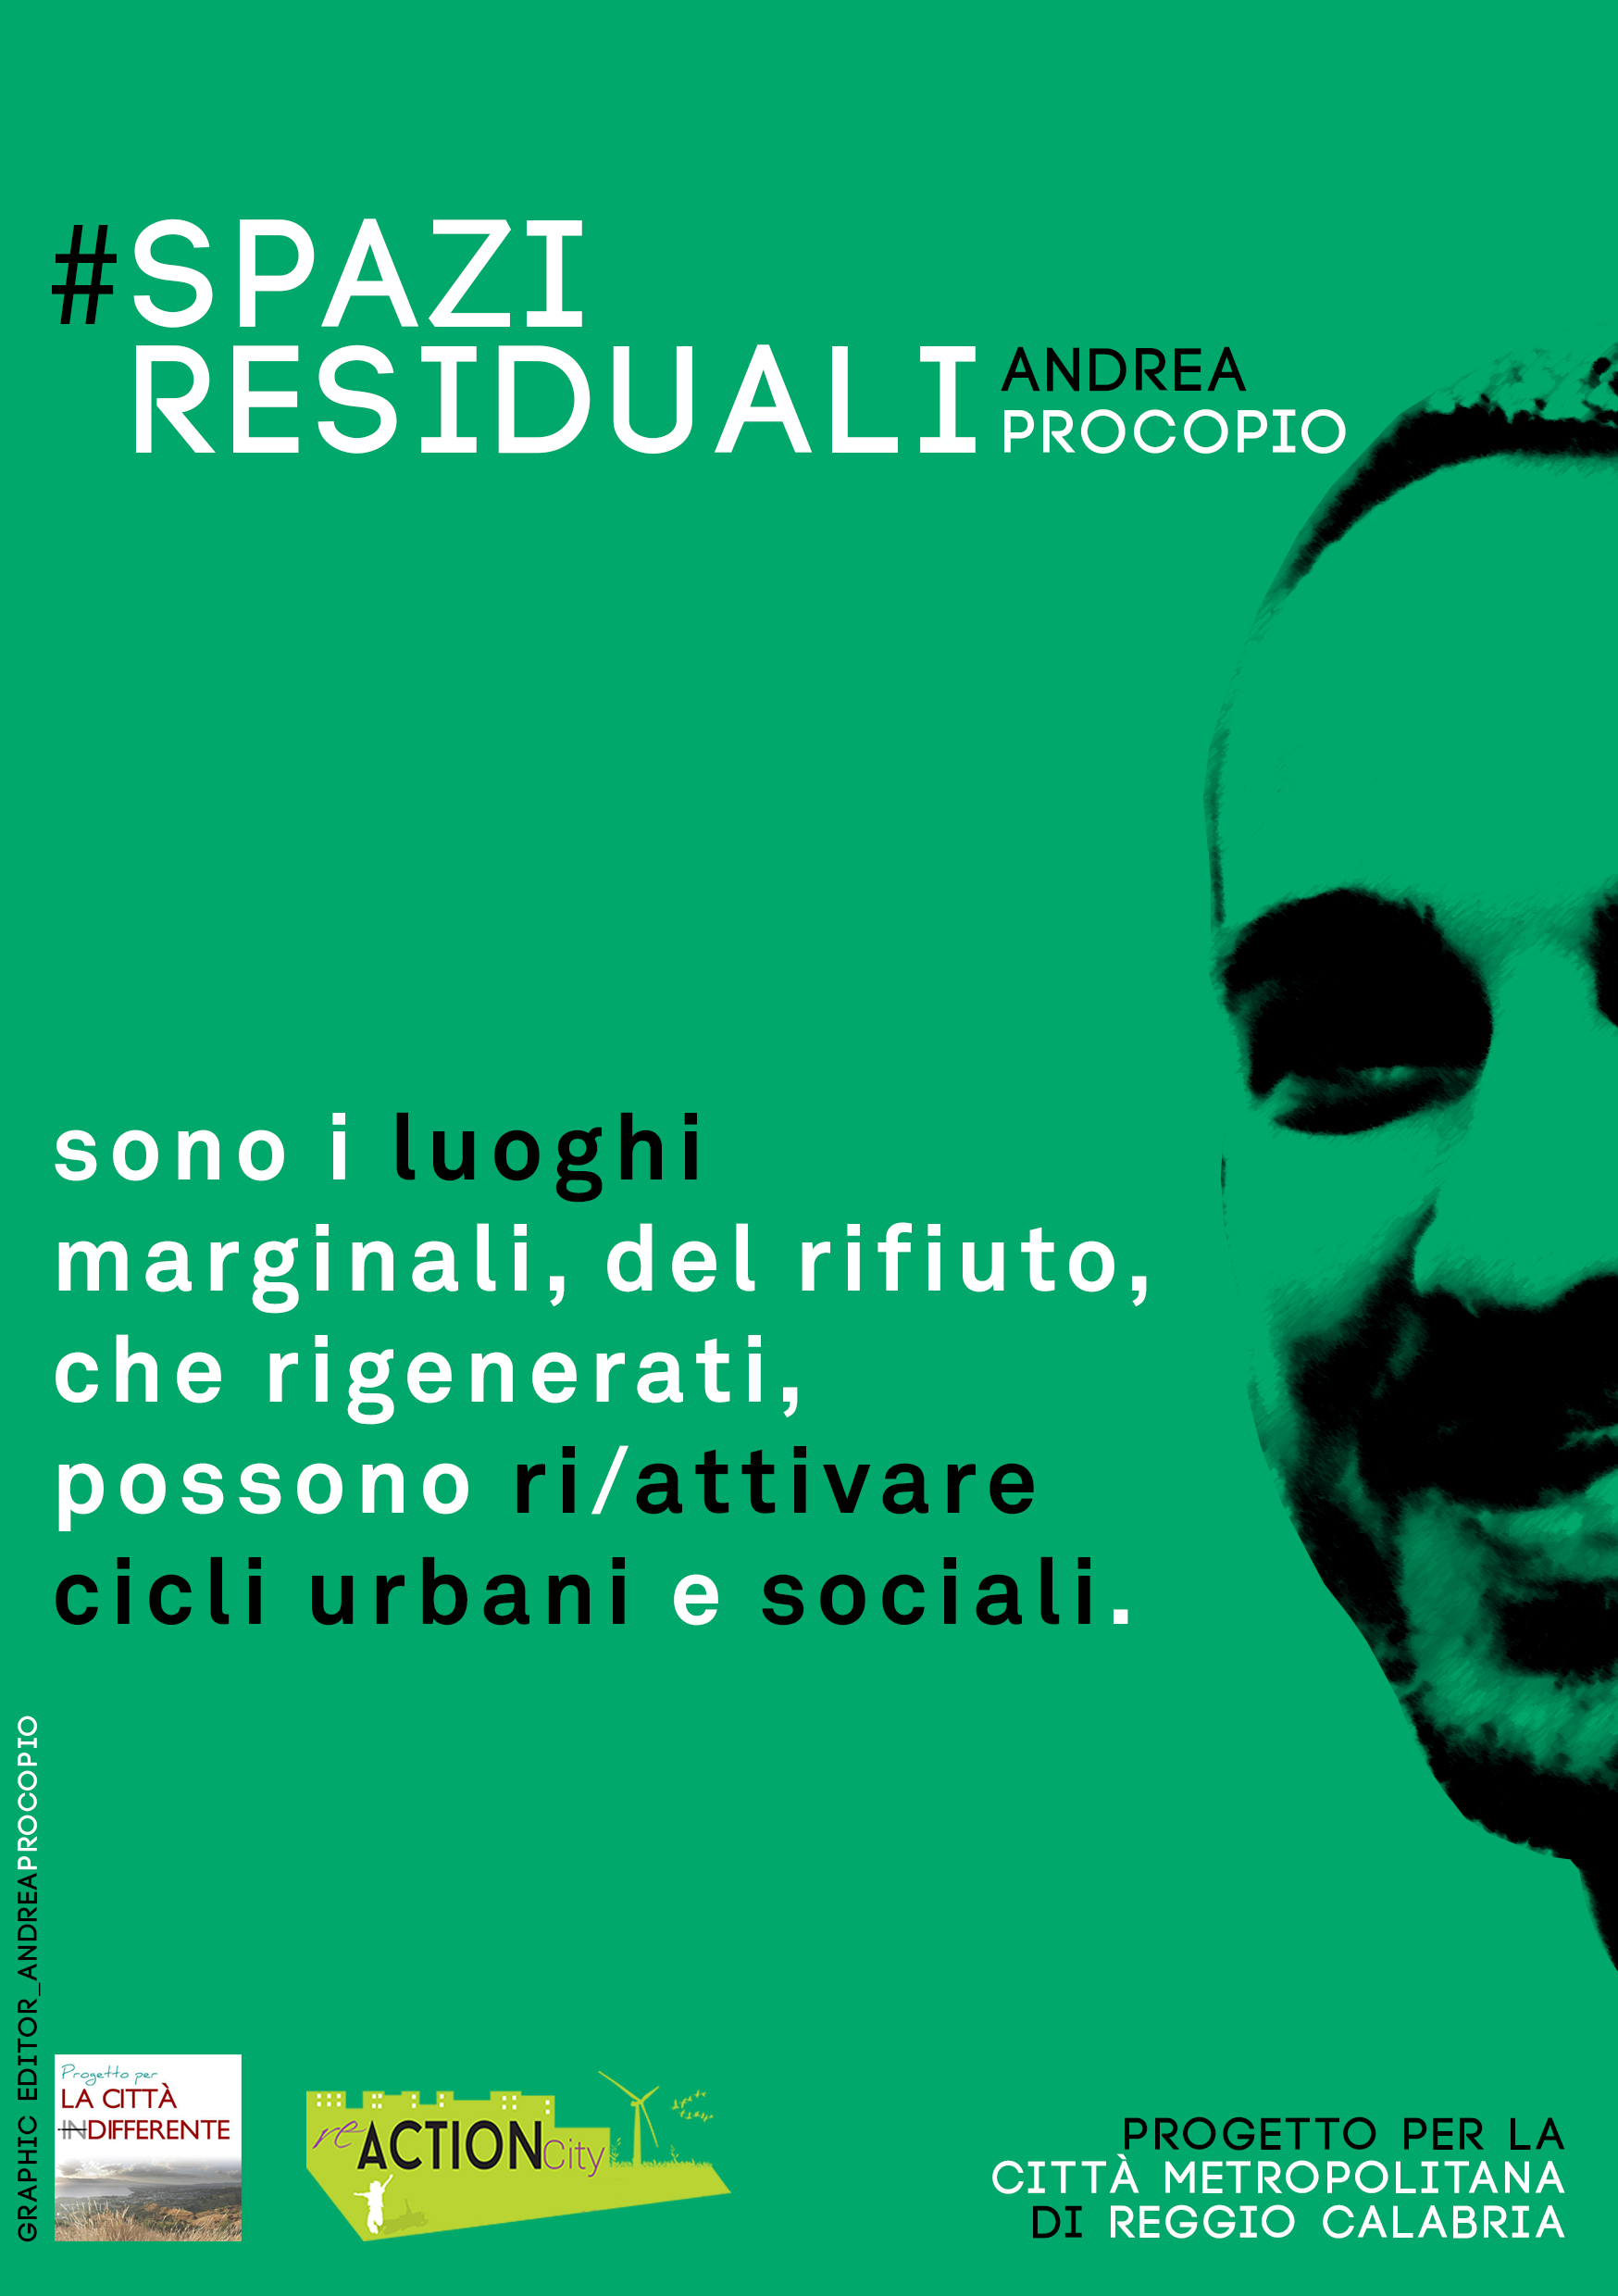 post-it_A.Procopio #spaziresiduali.jpg